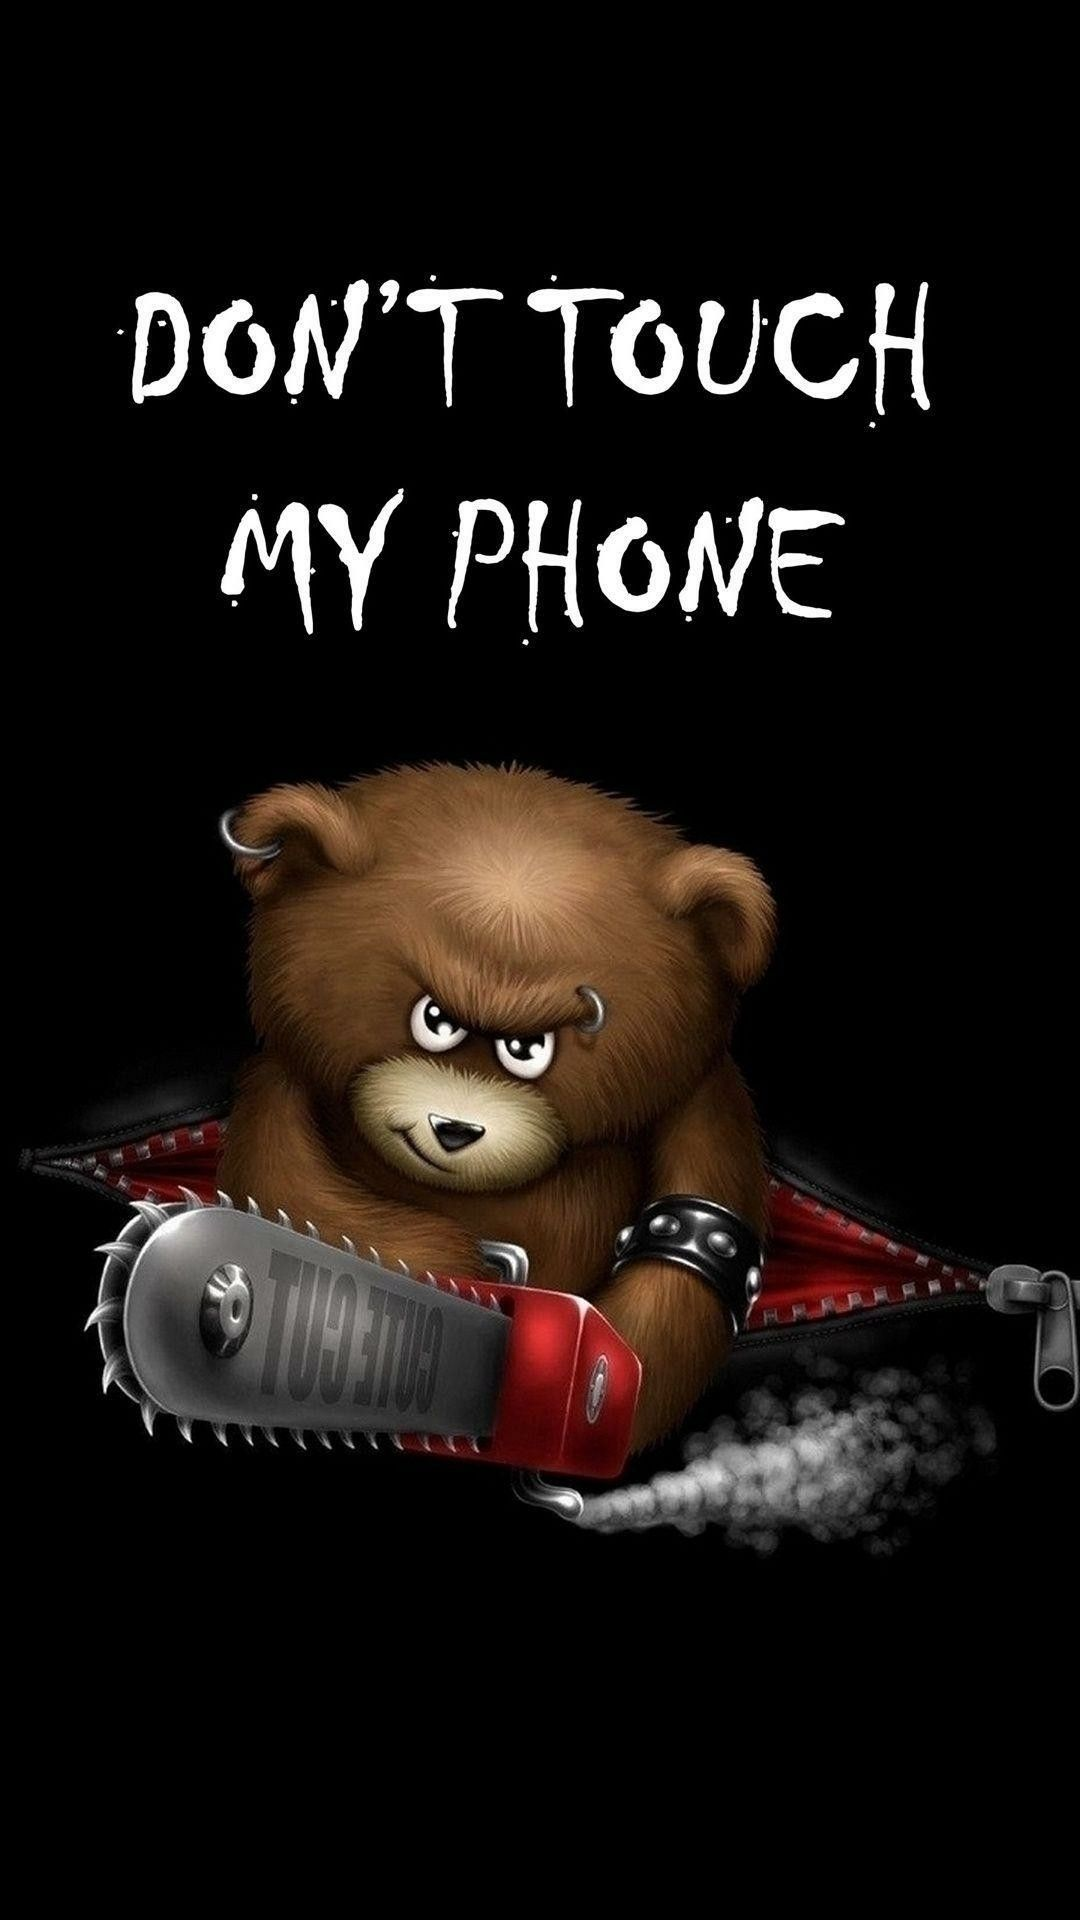 Bear With Chainsaw Dont Touch My Phone Wallpapers Funny Phone Wallpaper Funny Iphone Wallpaper